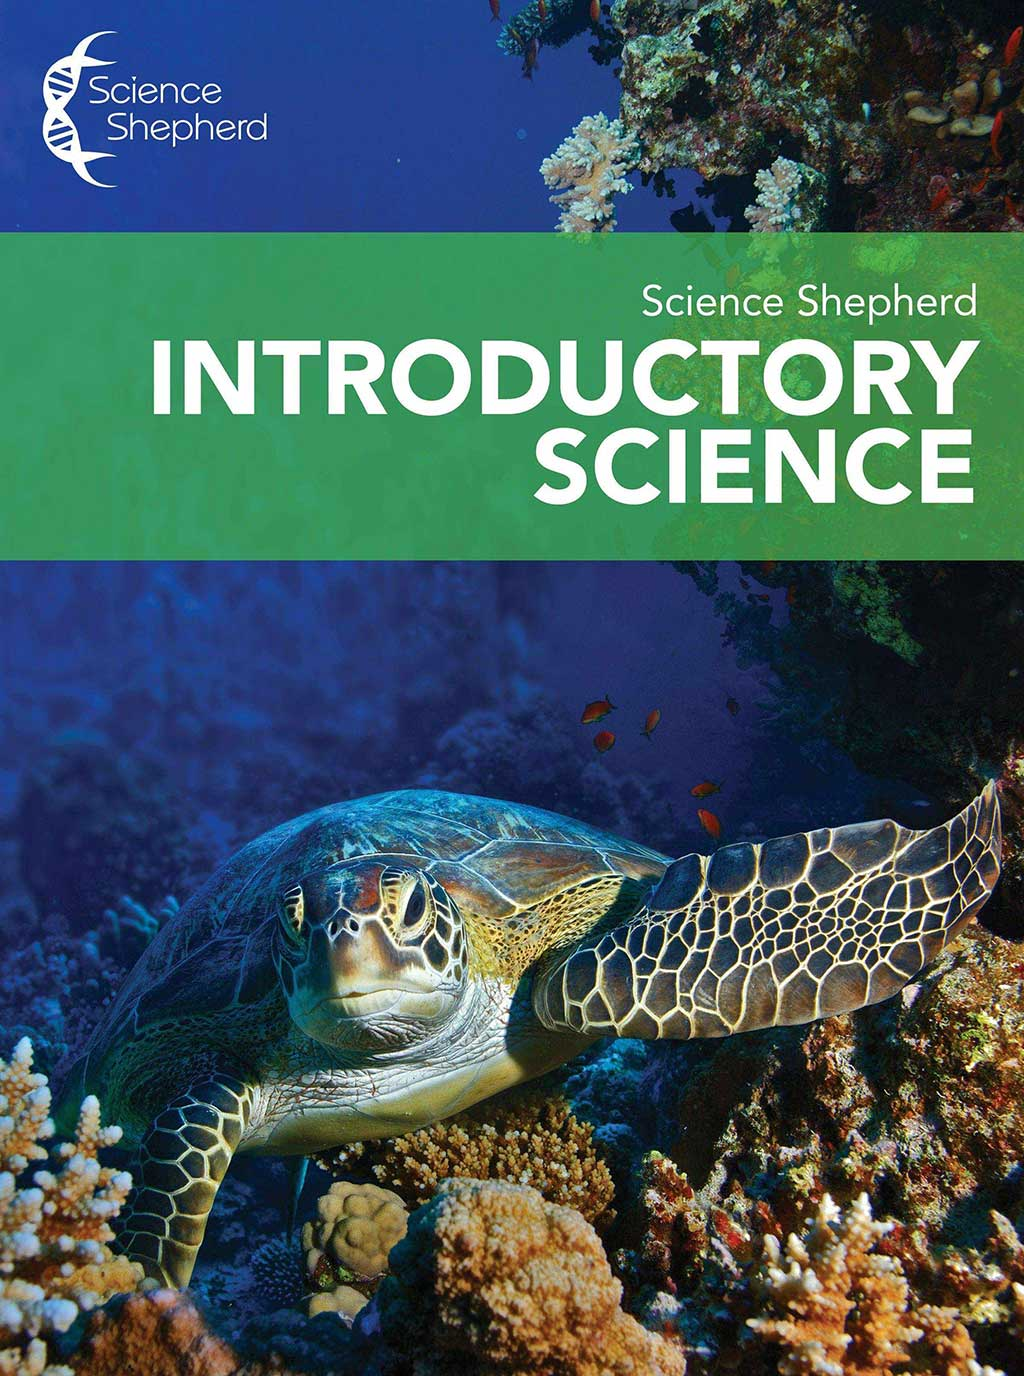 Homeschool Introductory Science Online Video Course for Grade School